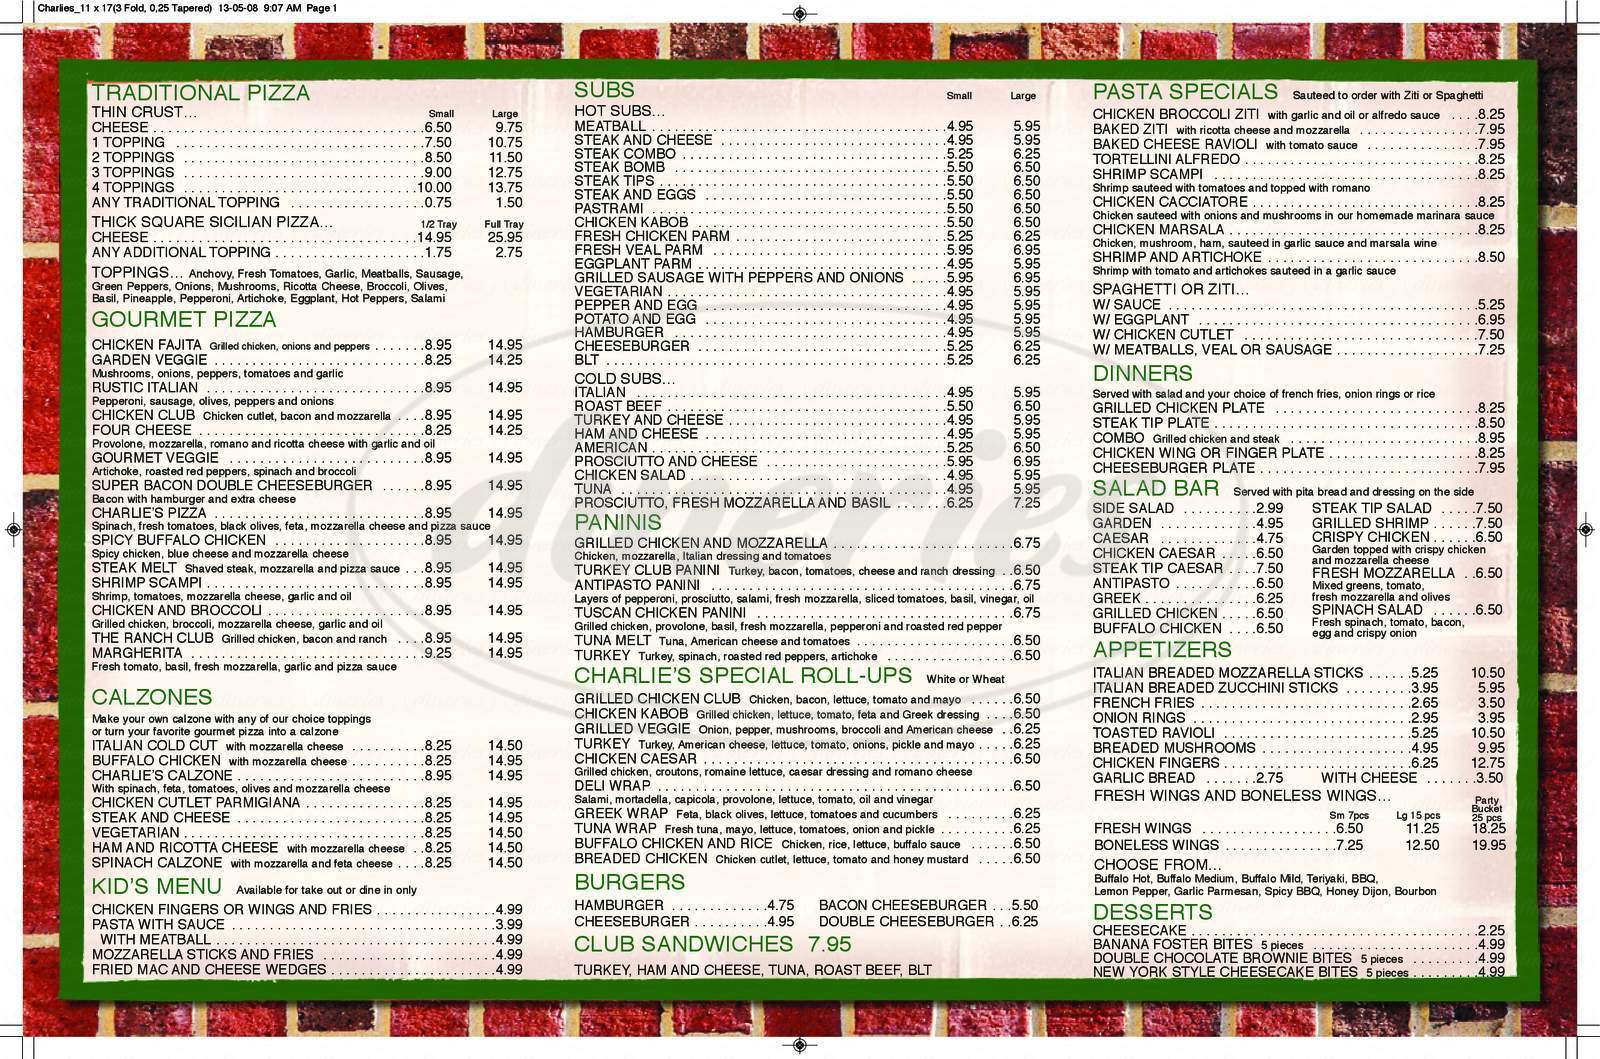 menu for Charlie's Pizzeria